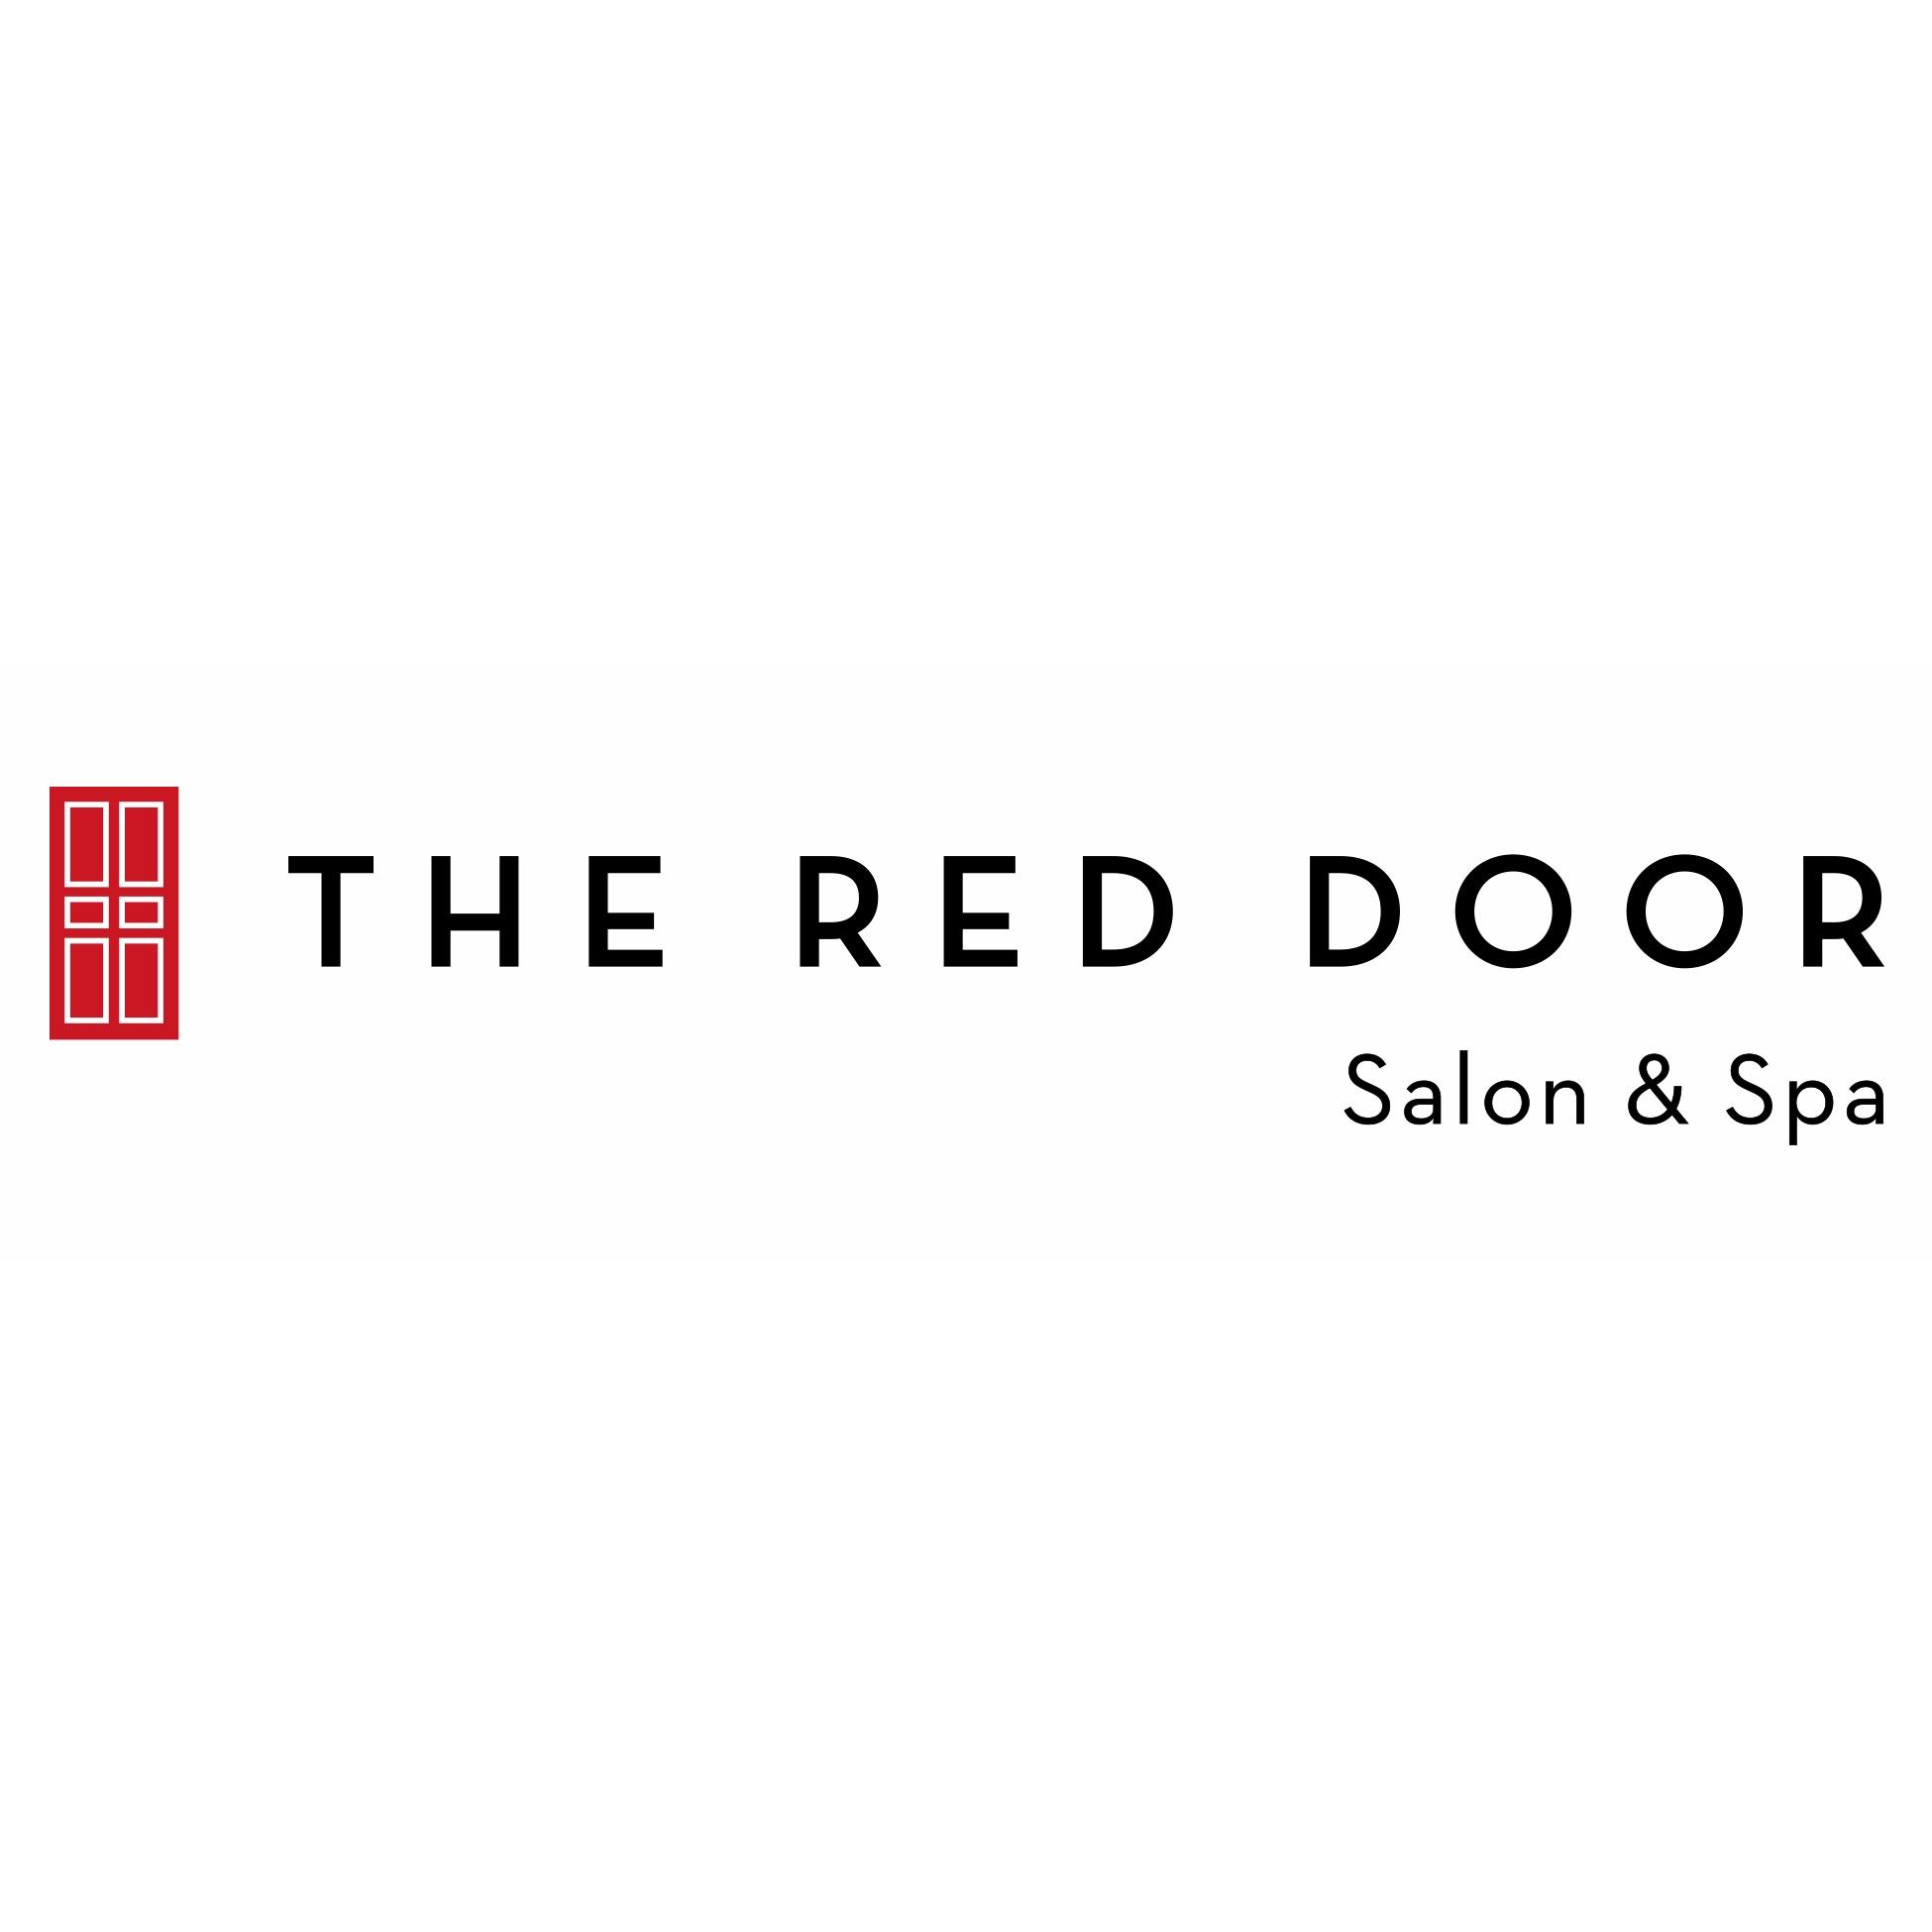 The Red Door Salon & Spa in Deerfield, IL